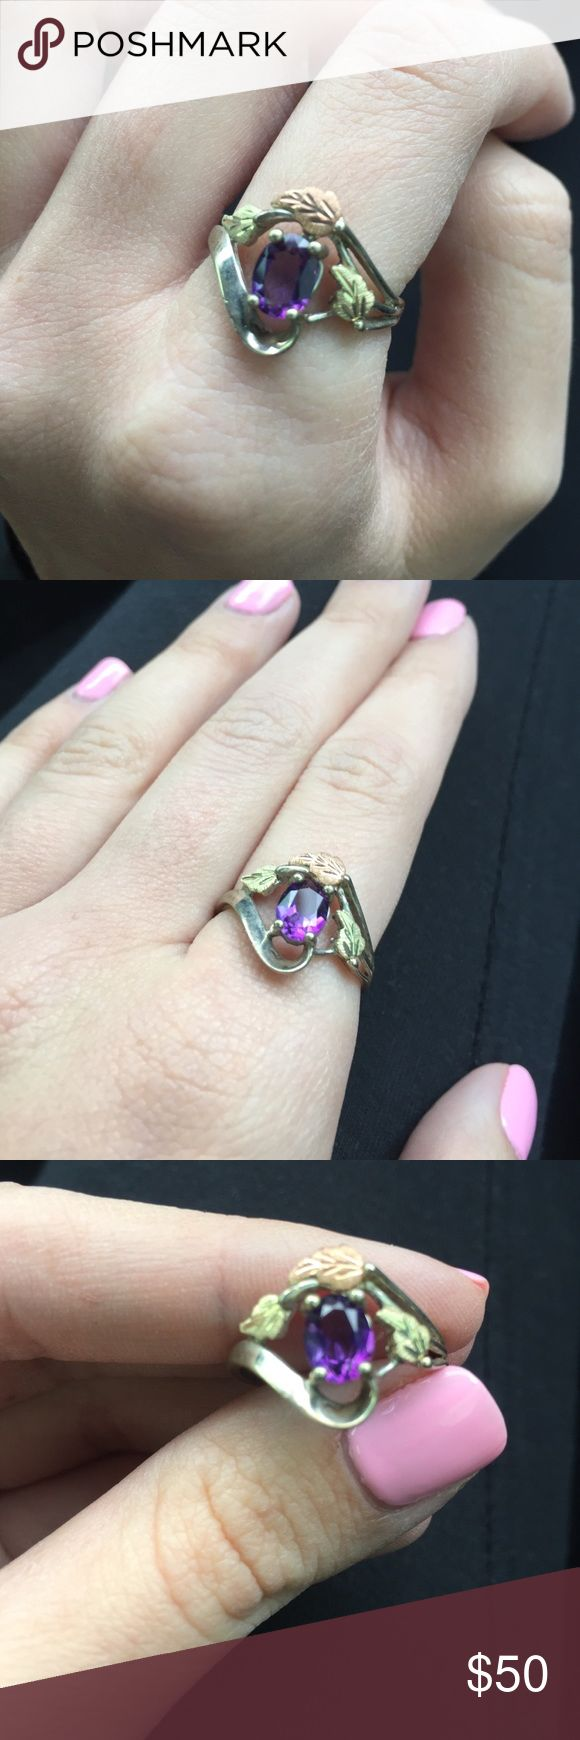 Black hills gold ring! Beautiful never worn black hills gold ring with amethyst stone in the middle. Jewelry Rings